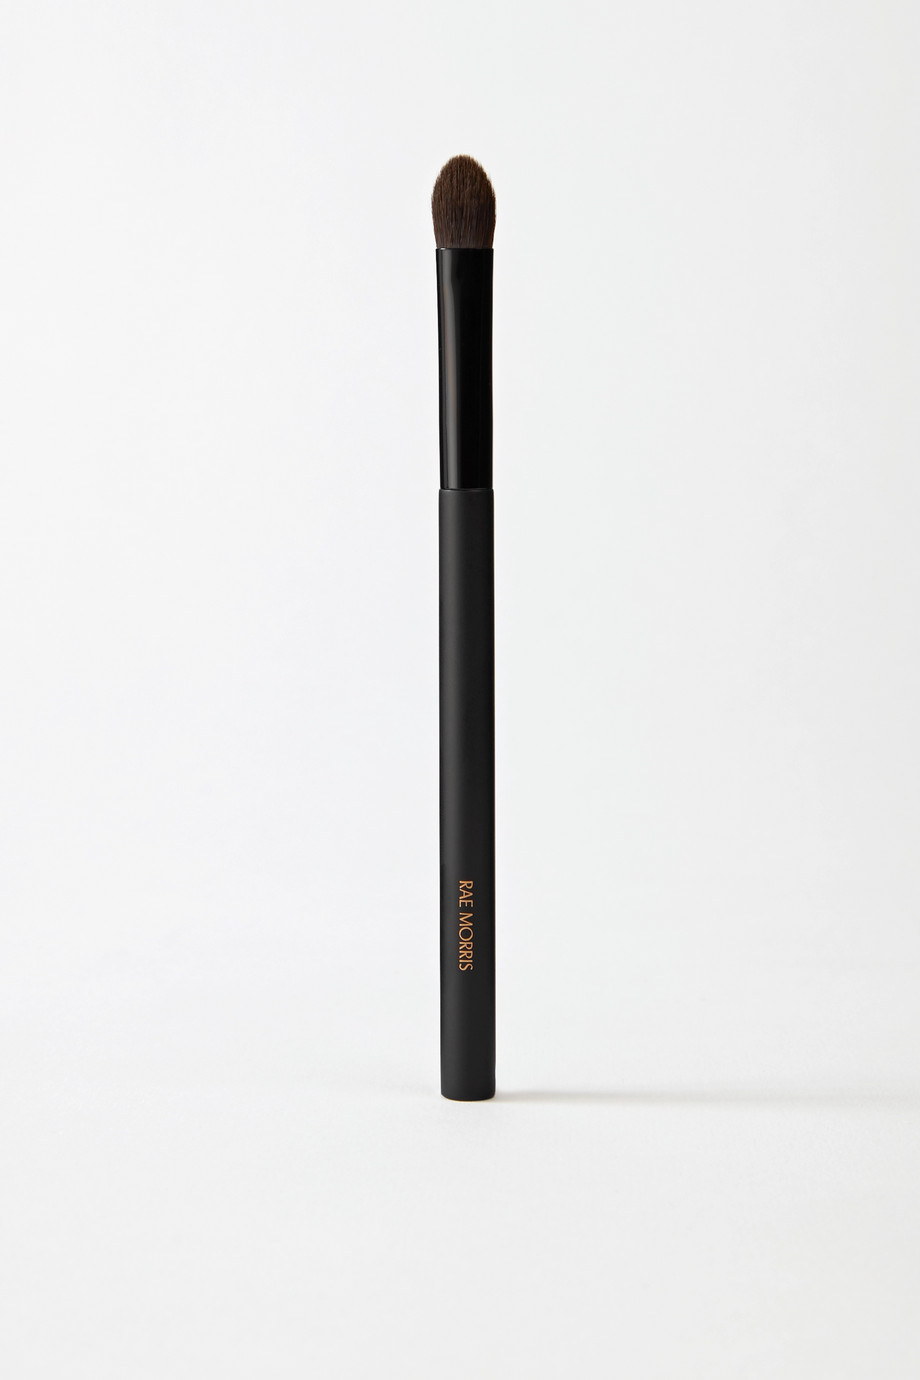 RAE MORRIS Jishaku 8.5 Crème Shadow Shader Brush